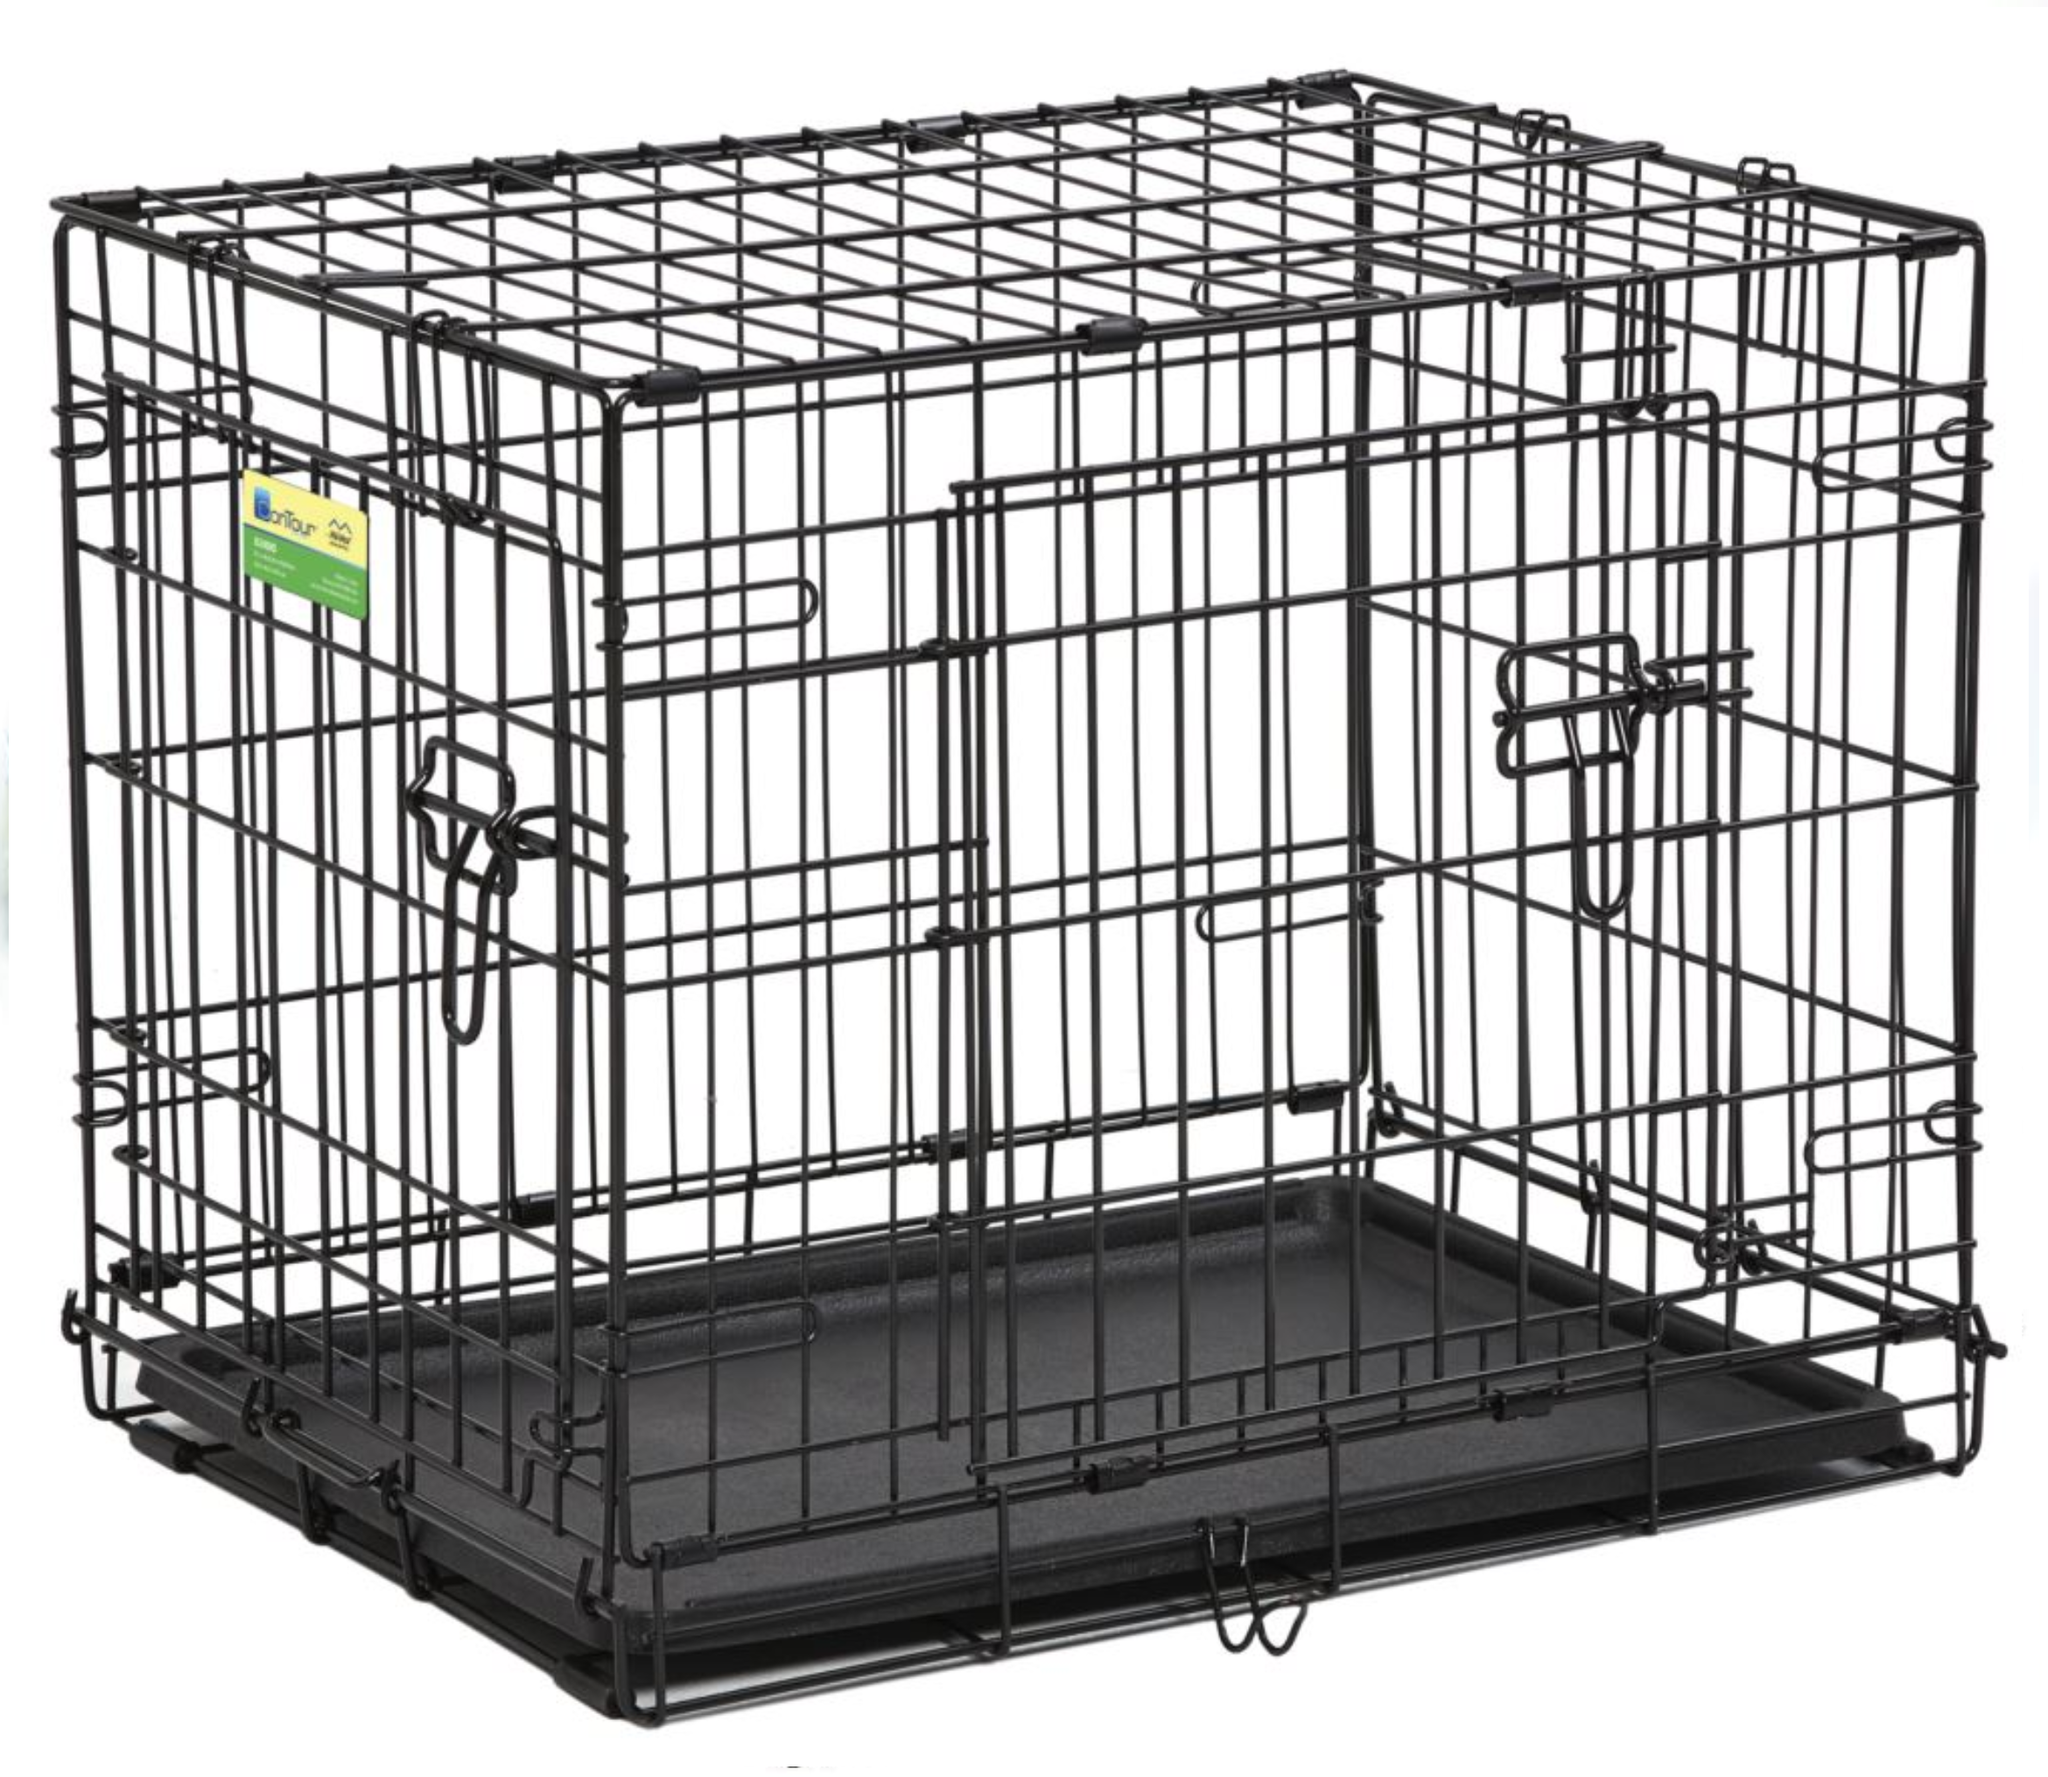 MIDWEST CONTAINER CONTOUR 2-DR CRATE 42X28X30